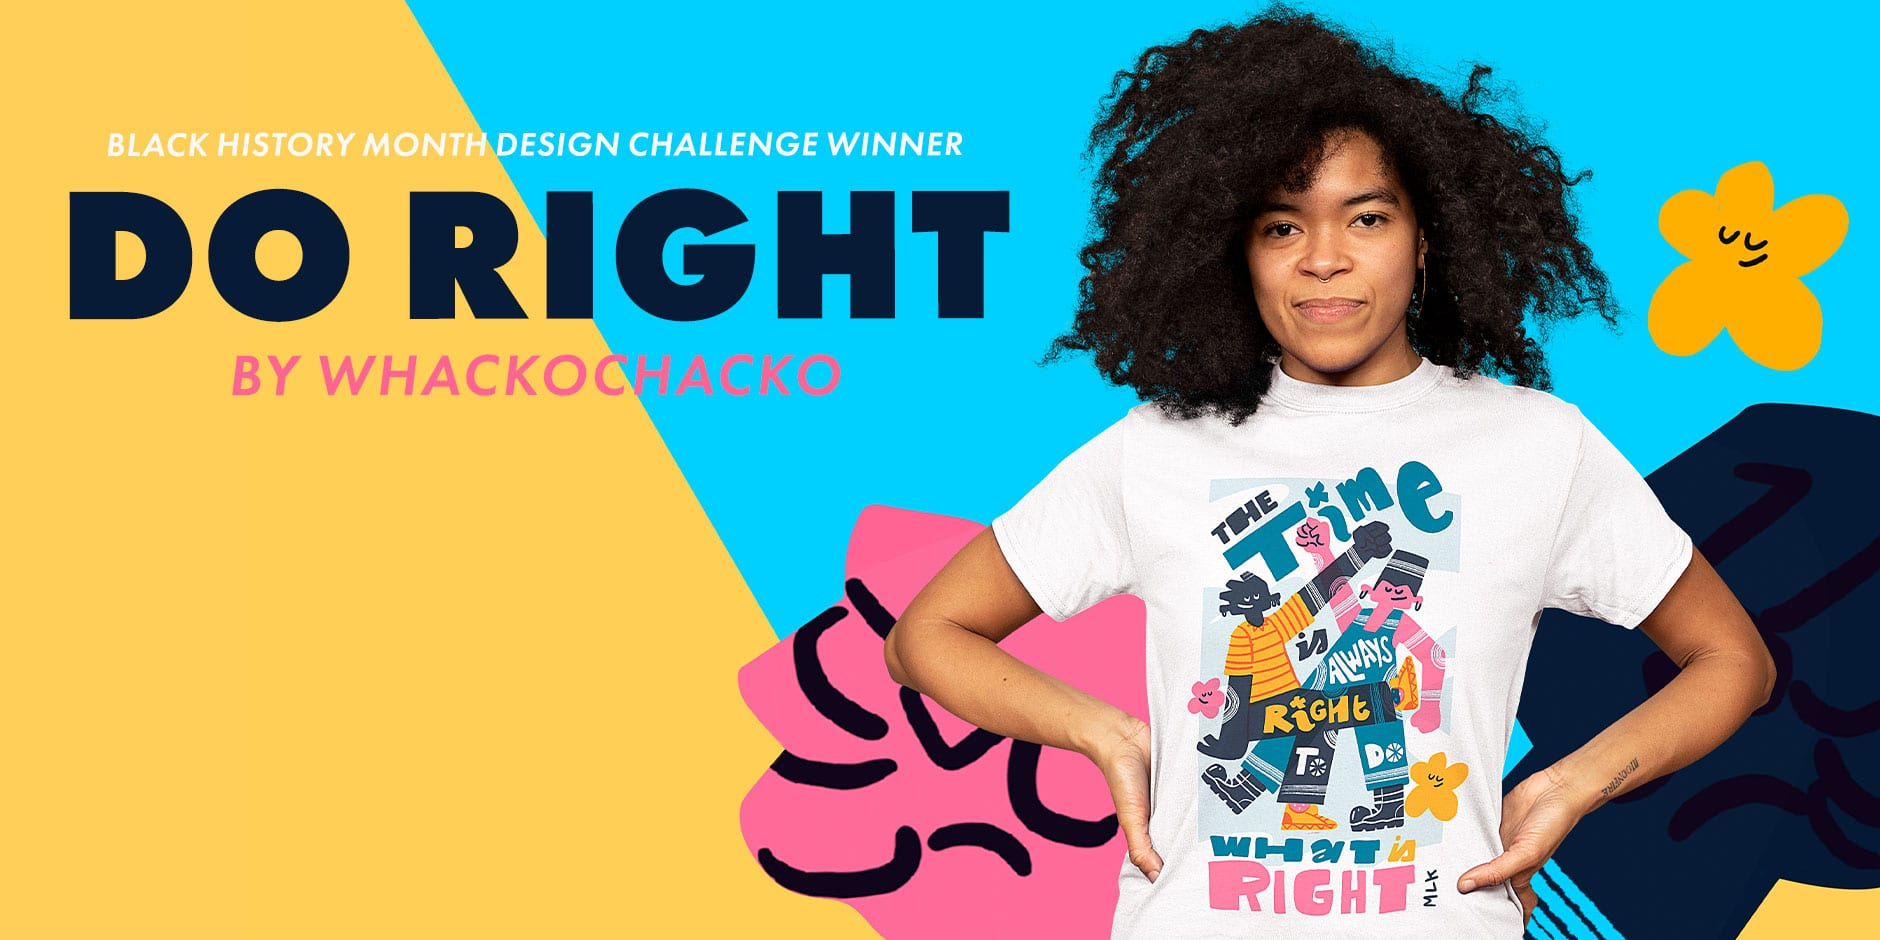 Featured Design: Do Right by Whackochacko